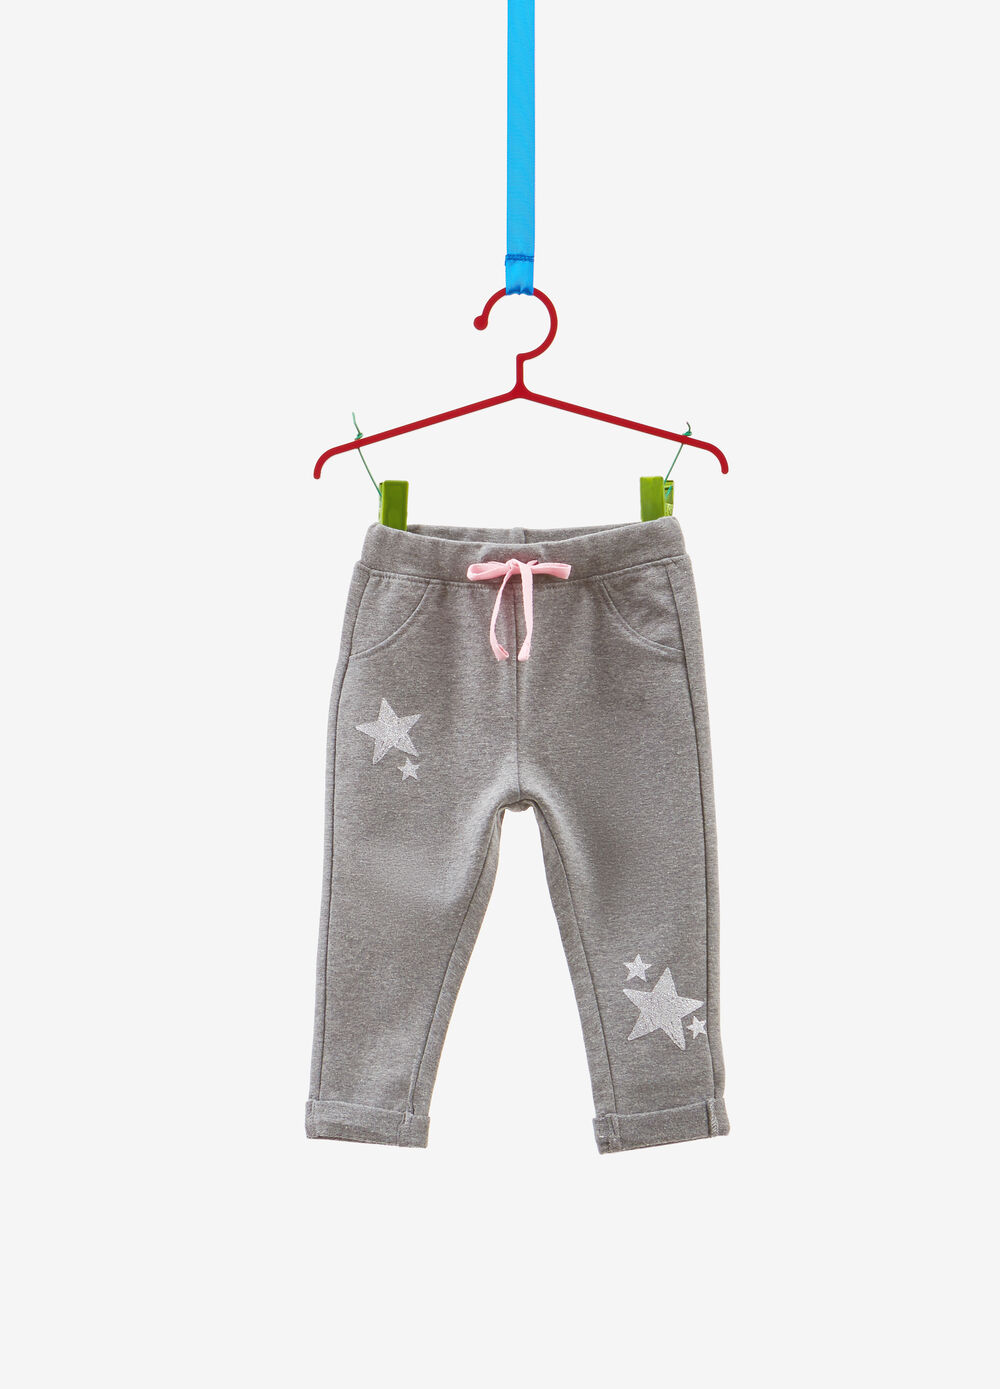 Stretch trousers with glitter stars print